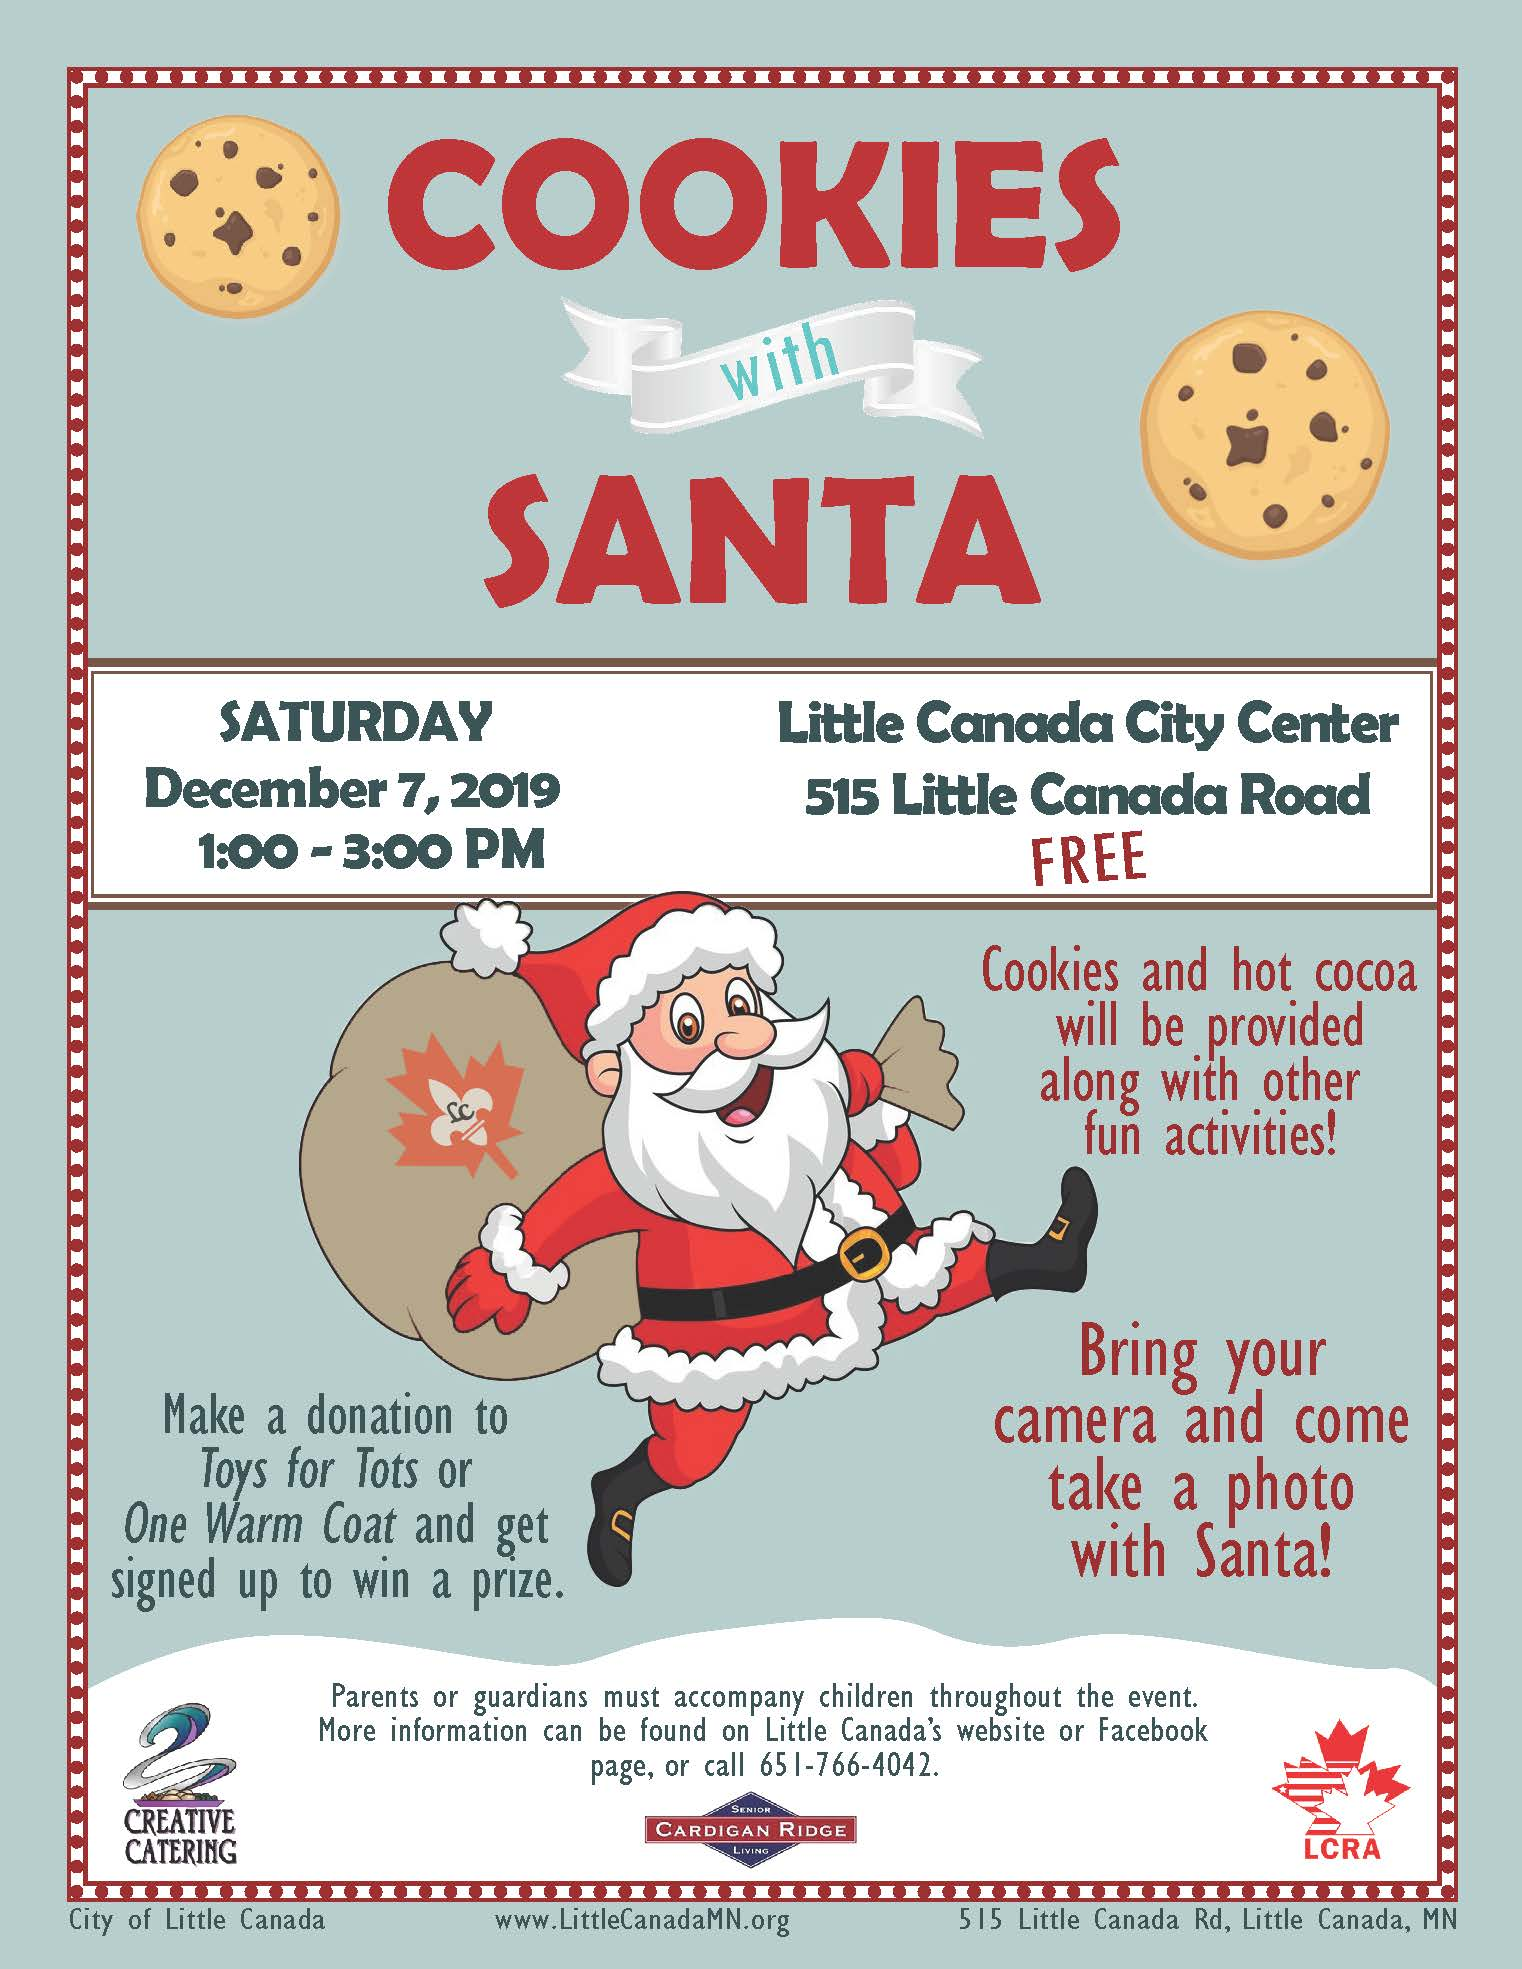 2018 Cookies with Santa Flyer